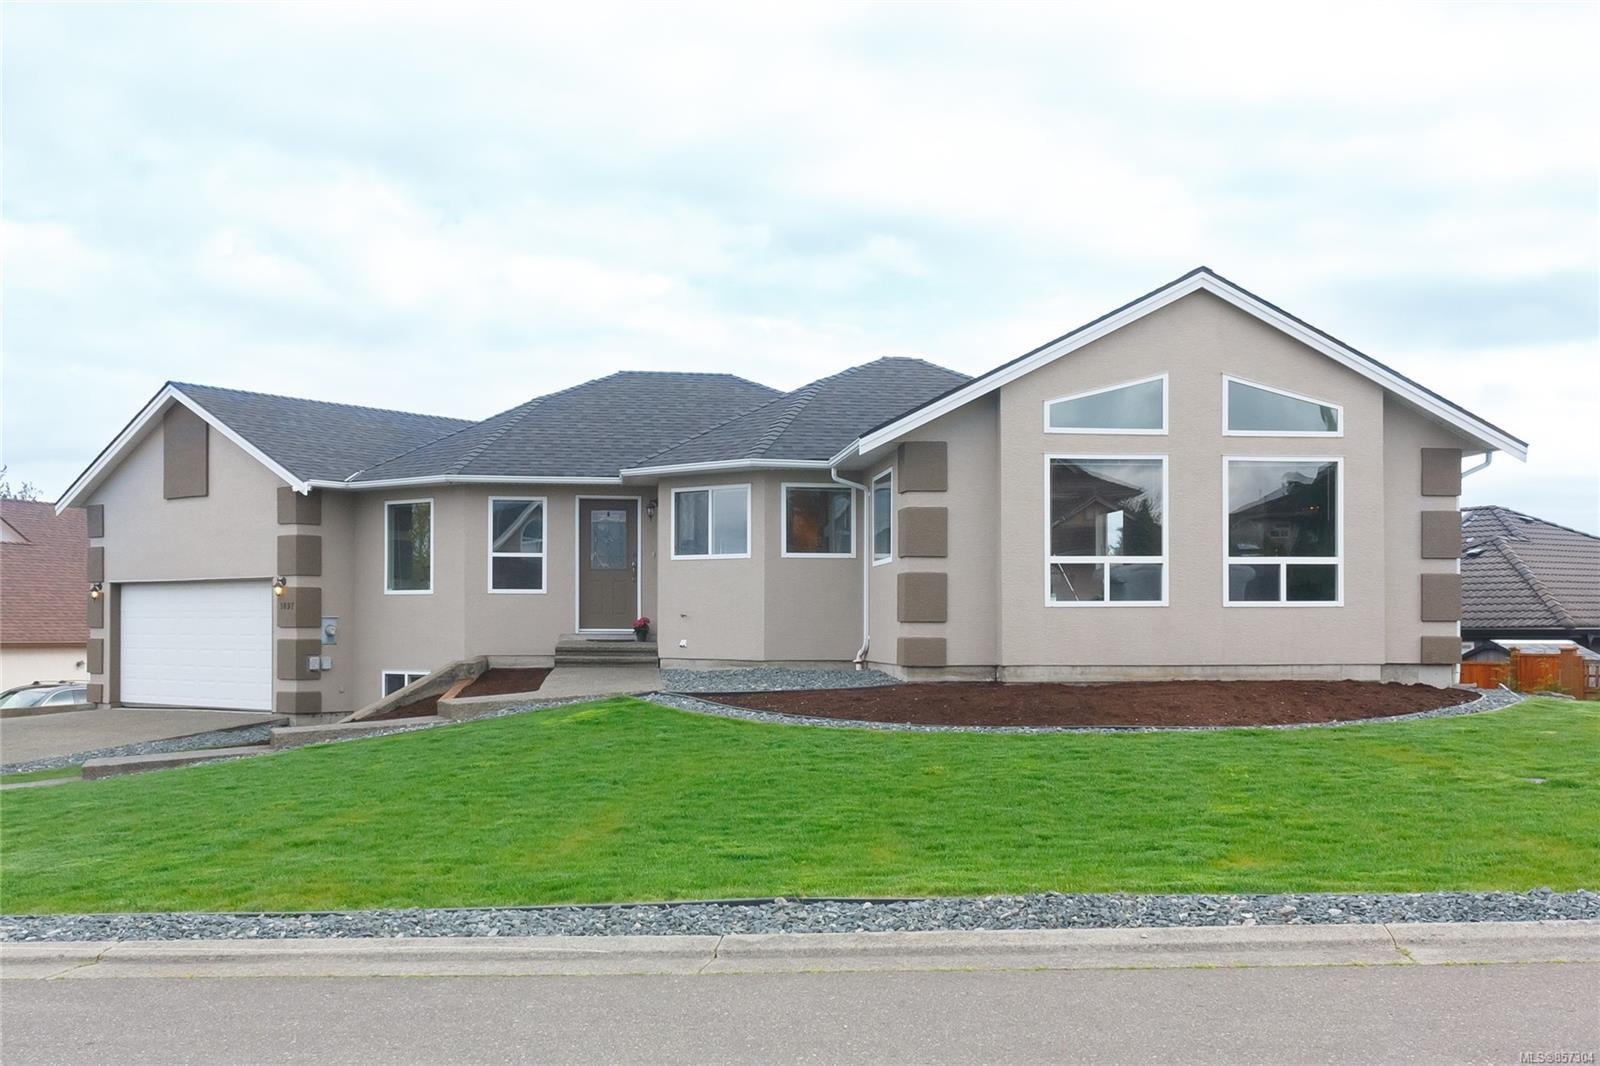 Main Photo: 1097 Aery View Way in : PQ French Creek House for sale (Parksville/Qualicum)  : MLS®# 857304